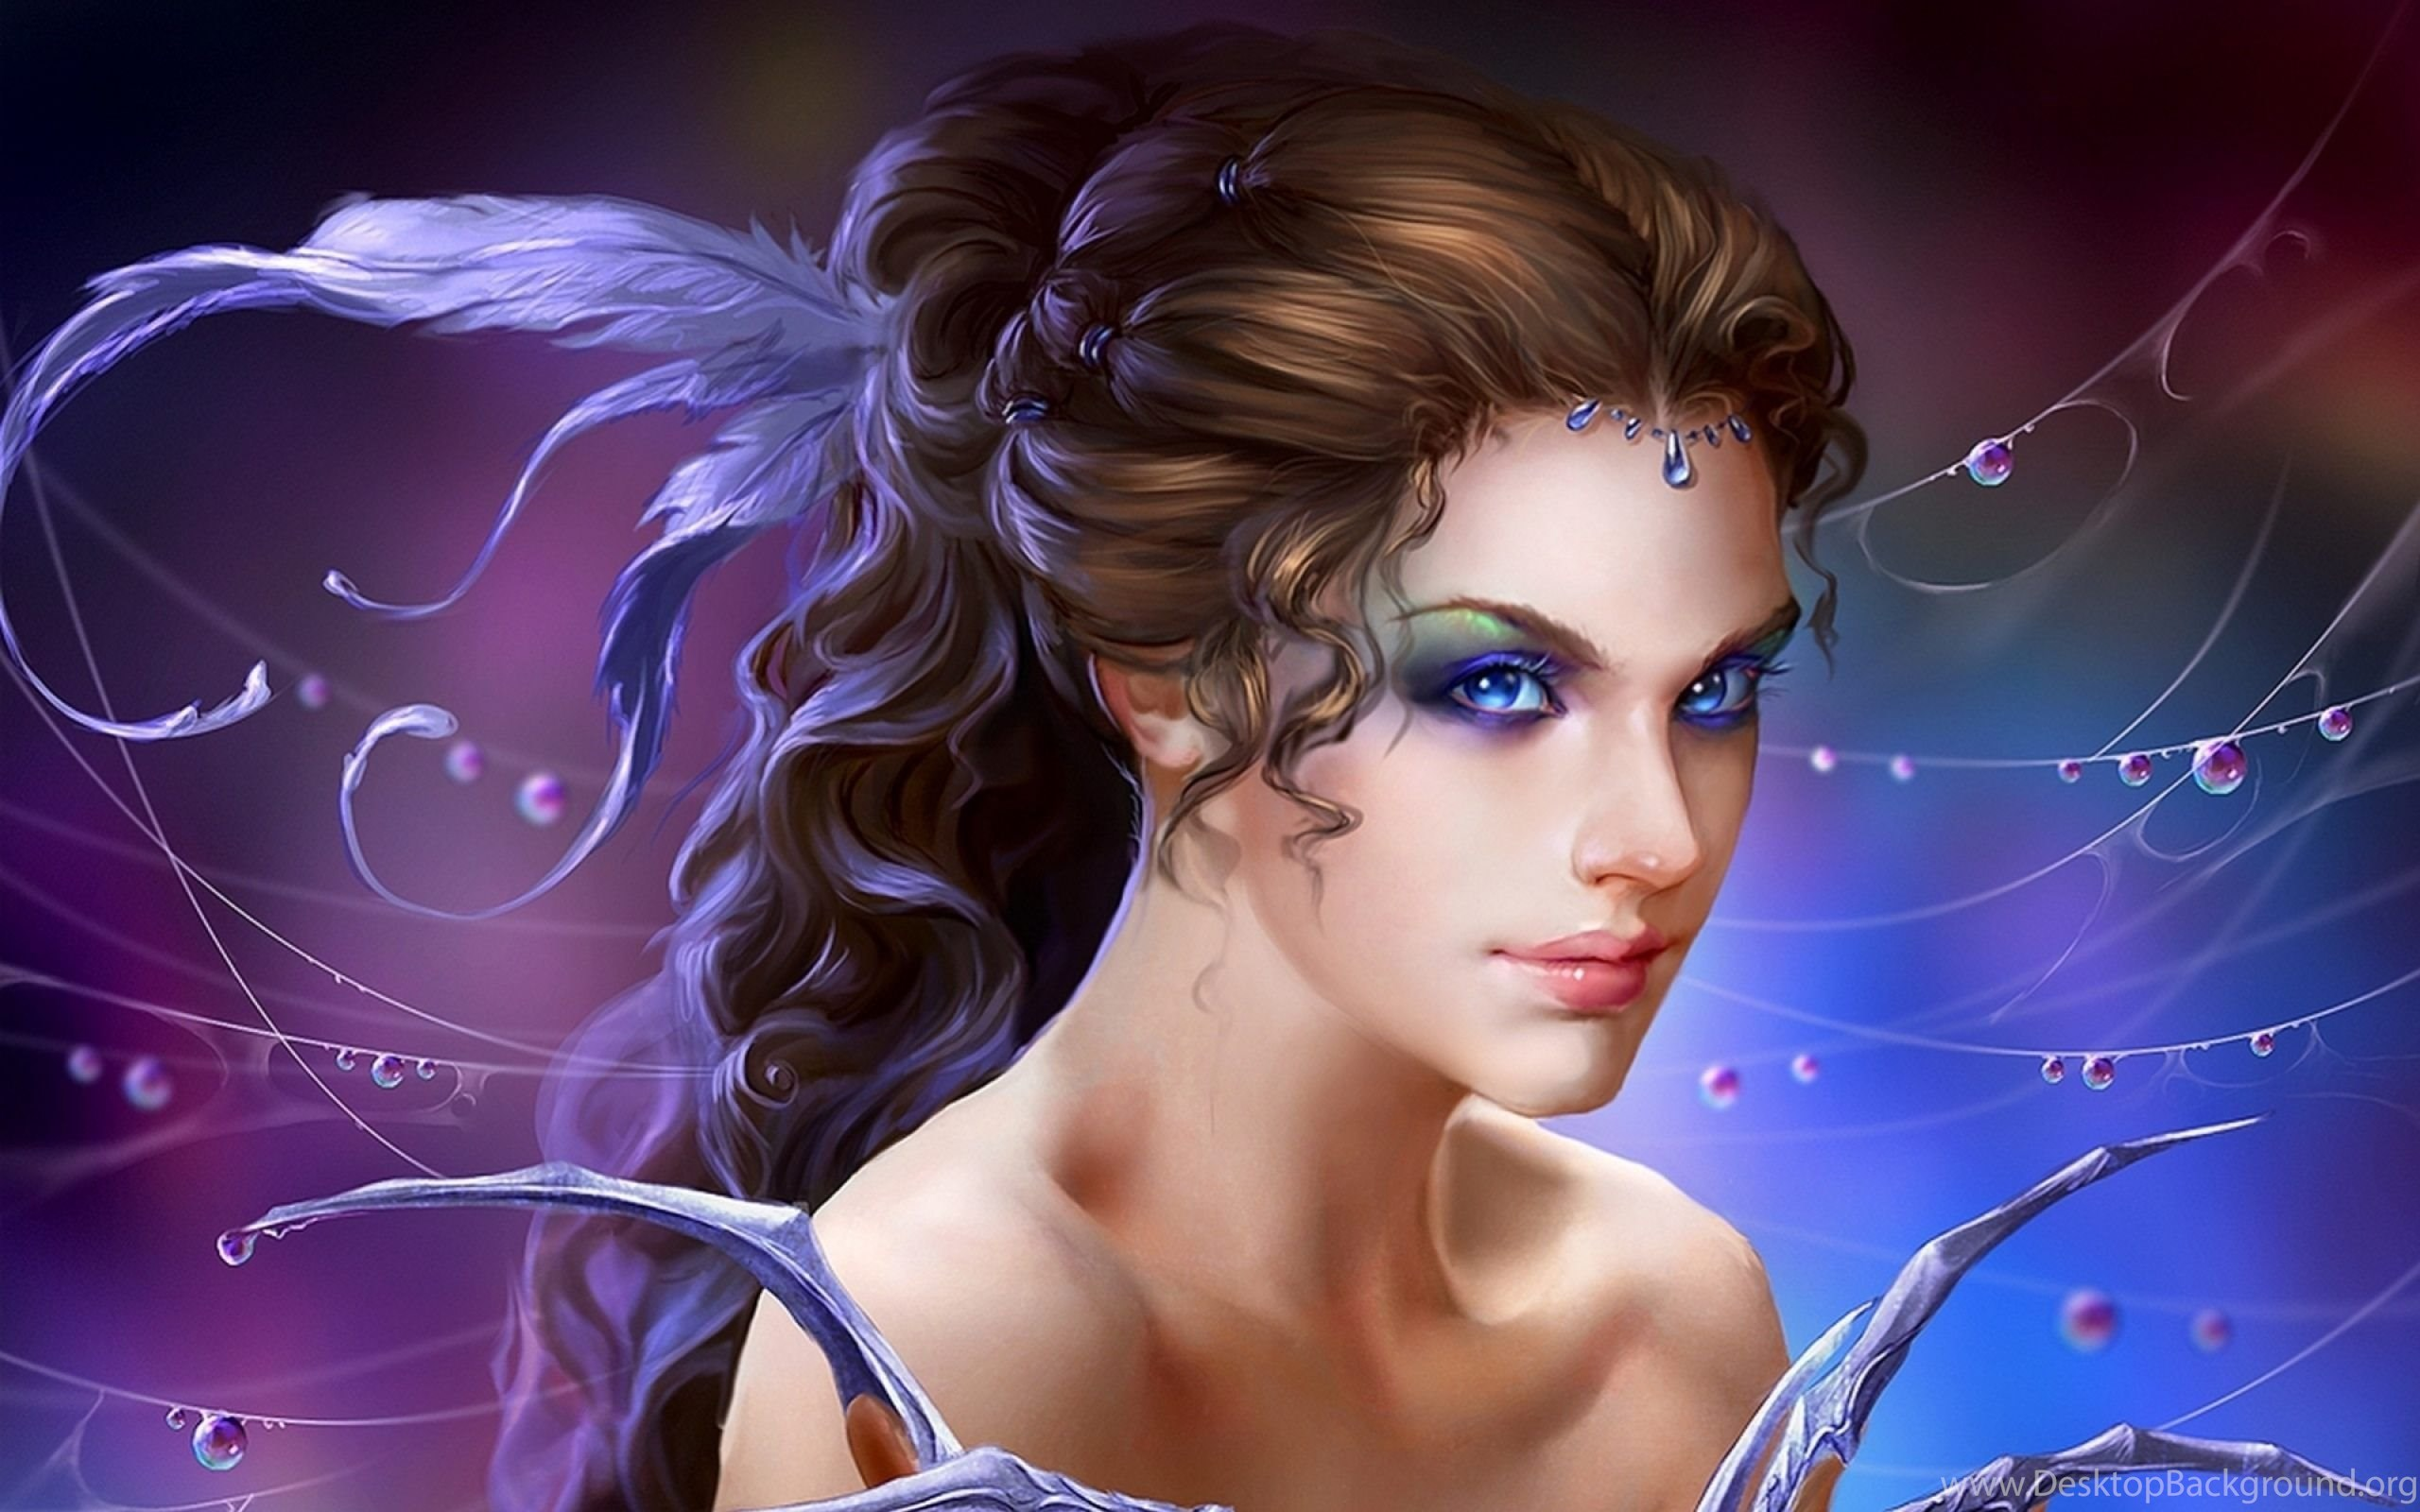 fantasy girl wallpapers archives wallpapers hd free wallpapers in